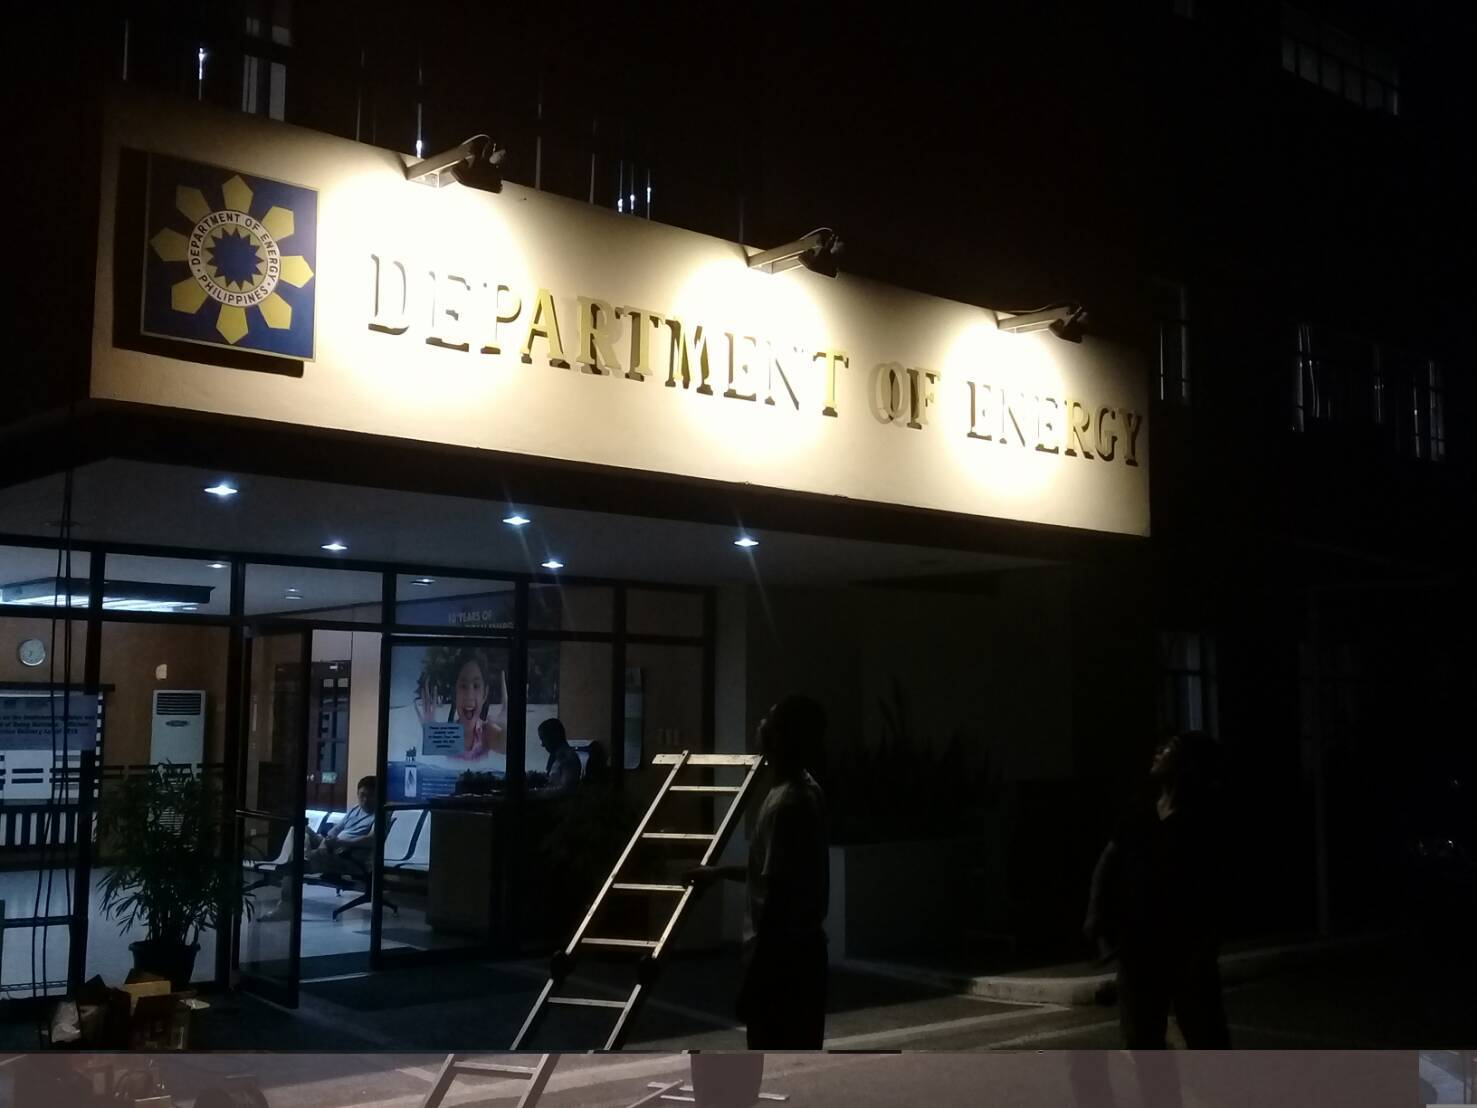 Philippines Department of Energy(DOE) Entrance installed THT-EX Lighting.